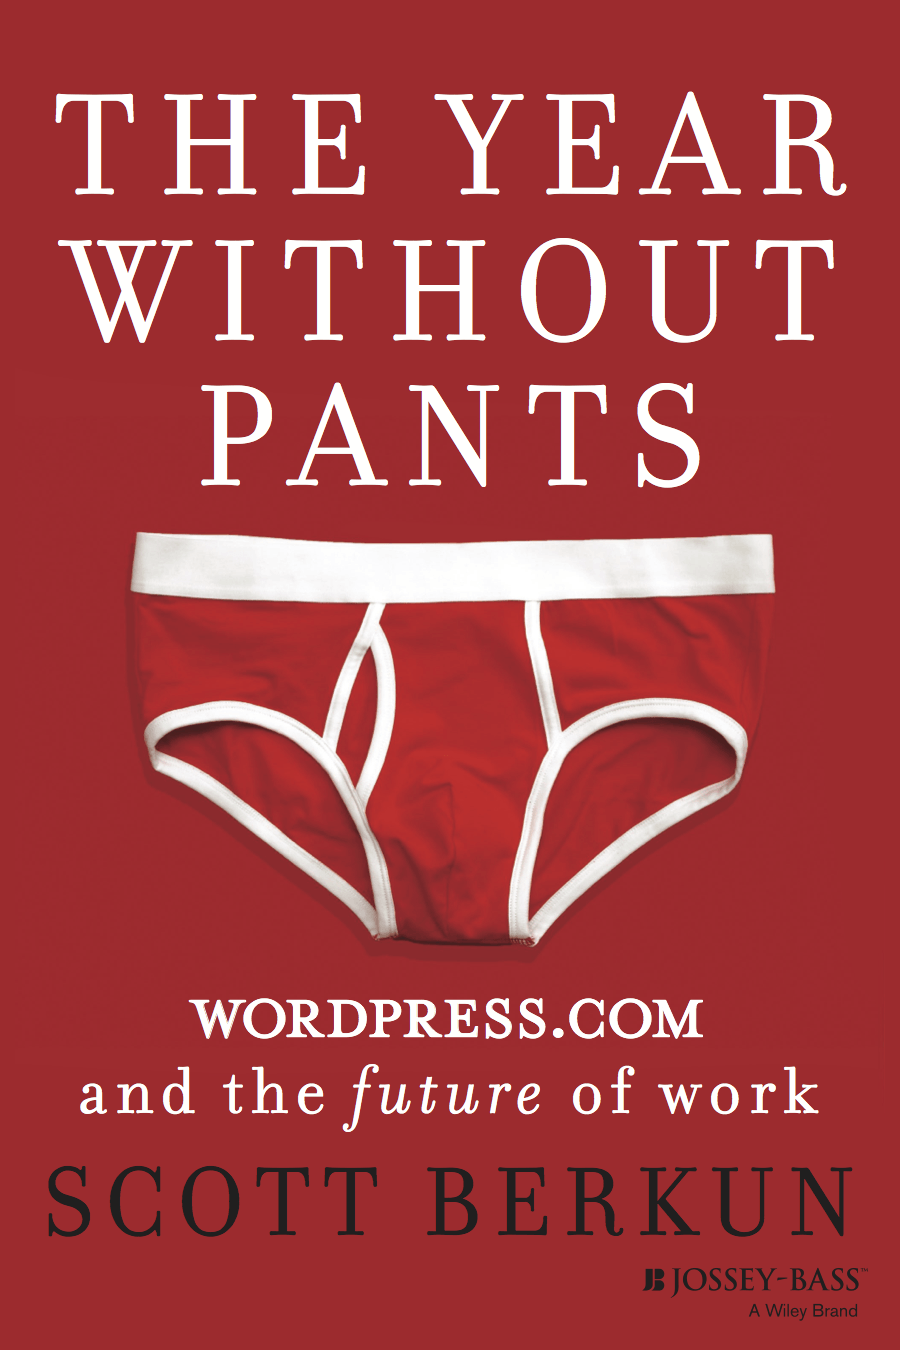 The Year Without Pants Summary